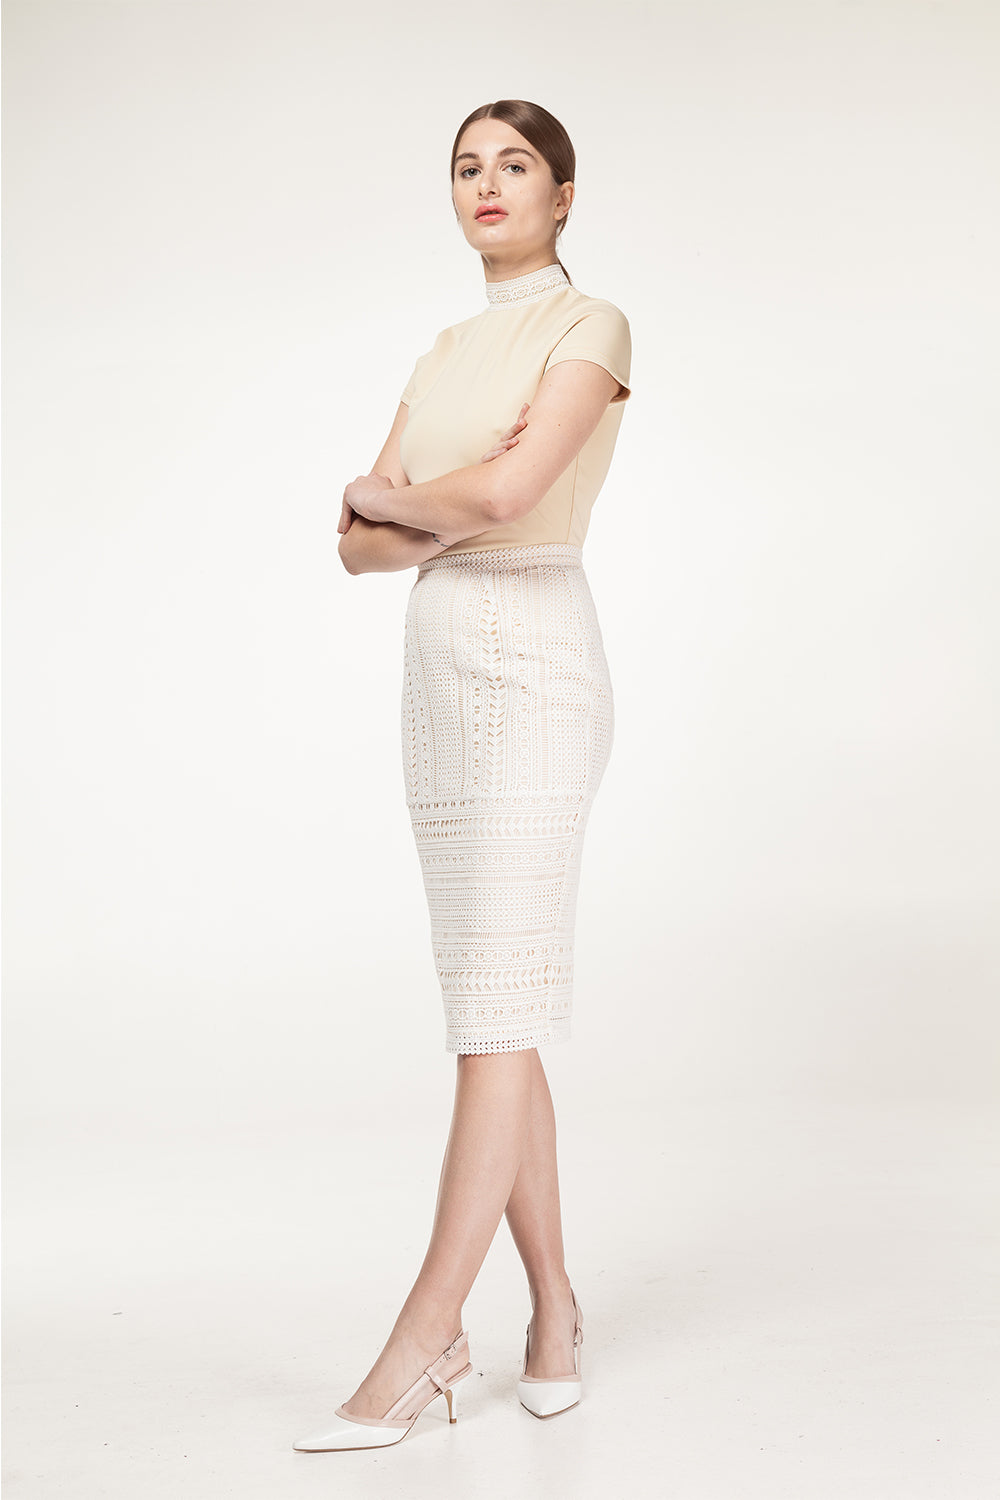 Lace Pencil Skirt - 60% Off